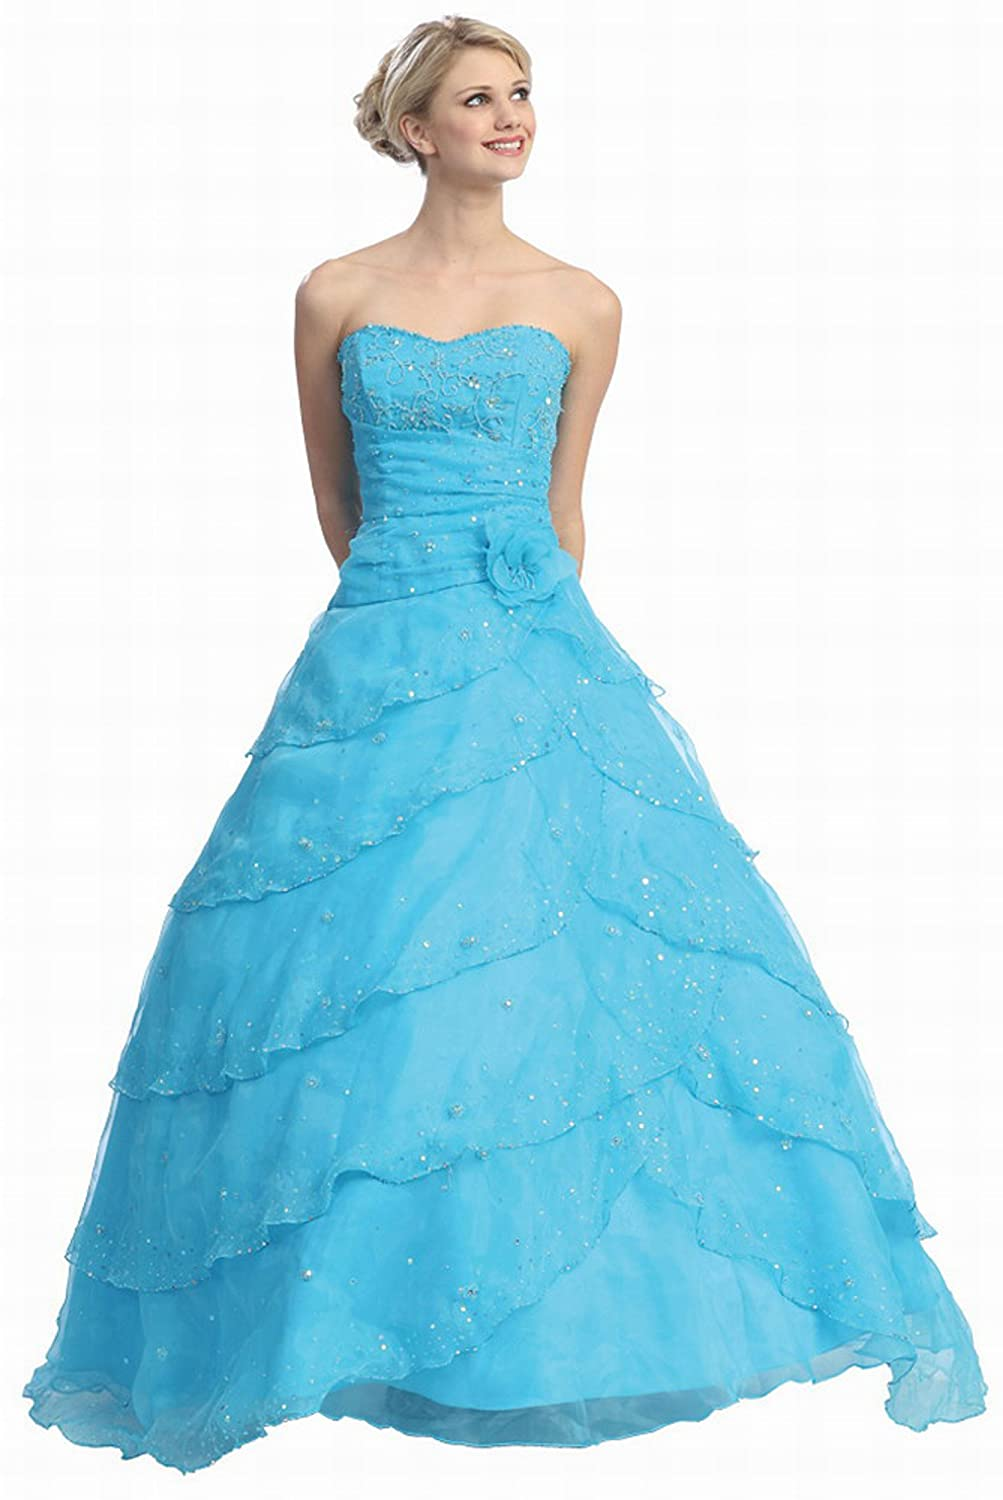 Bridal Prom Gown